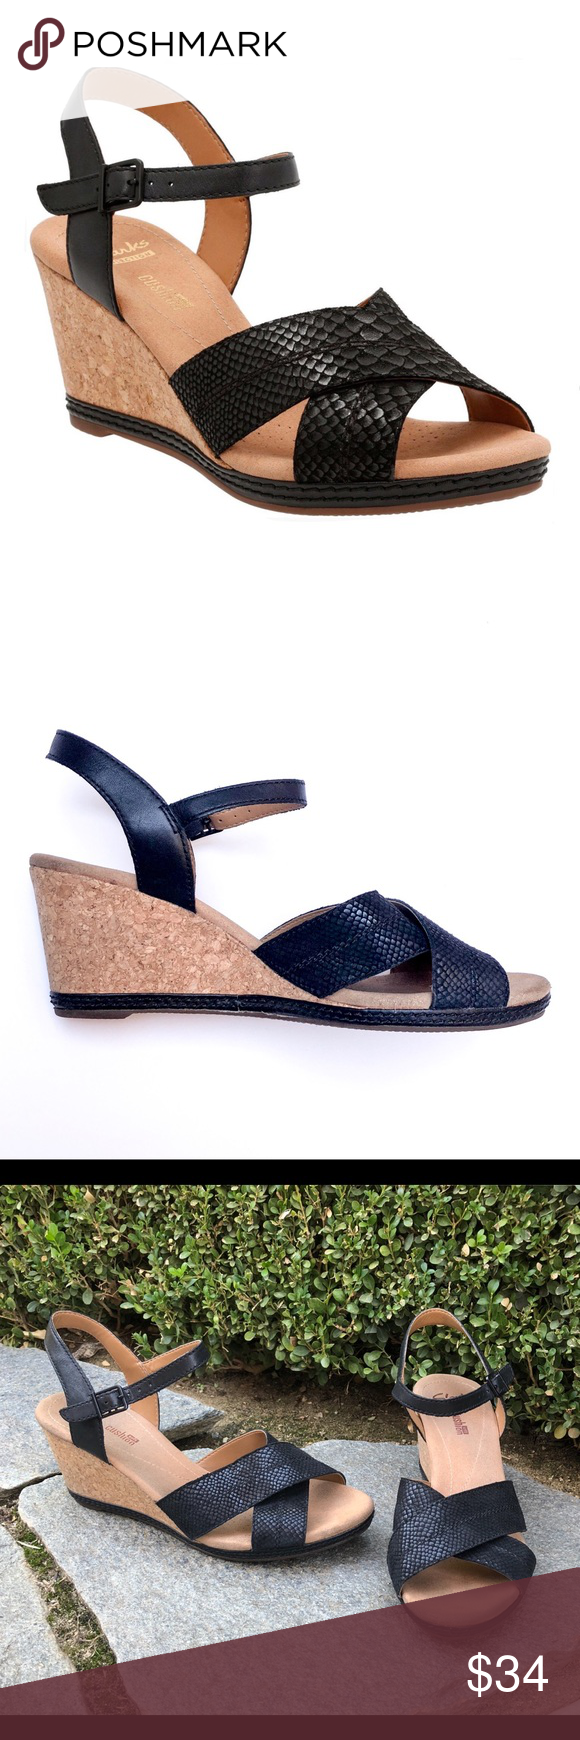 "9009b9c8f3b Clarks Black Helio Latitude Wedge Ankle Sandal 10 Clarks Soft Cushion Helio  Latitude Black Leather (Snake Texture) 3"" Cork Wedge Heel Adjustable Ankle  strap ..."